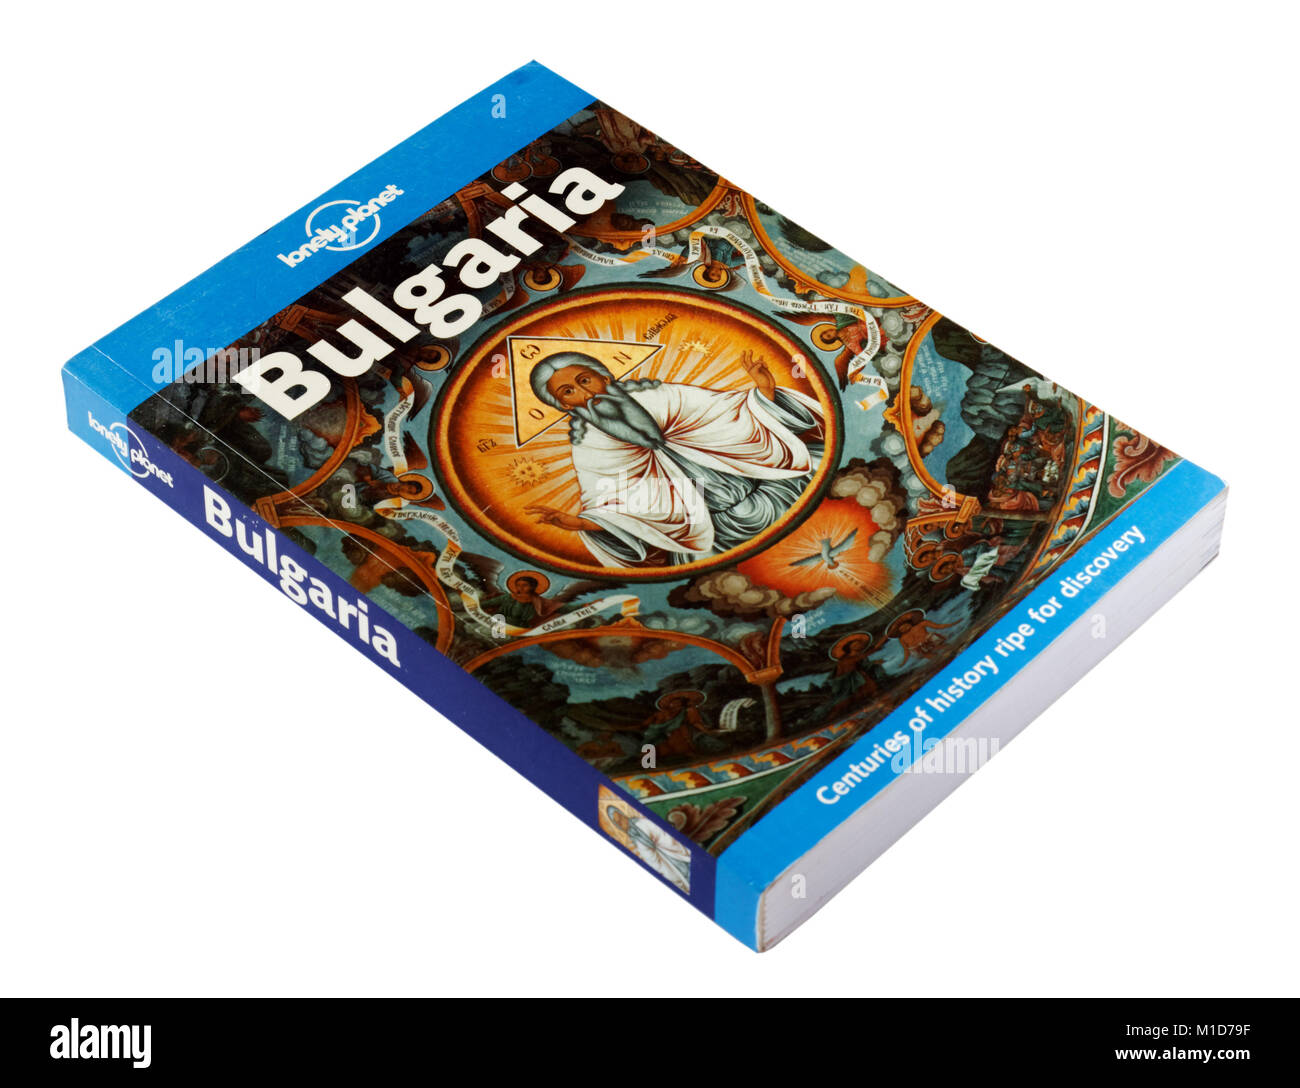 The Lonely Planet guide to Bulgaria - Stock Image